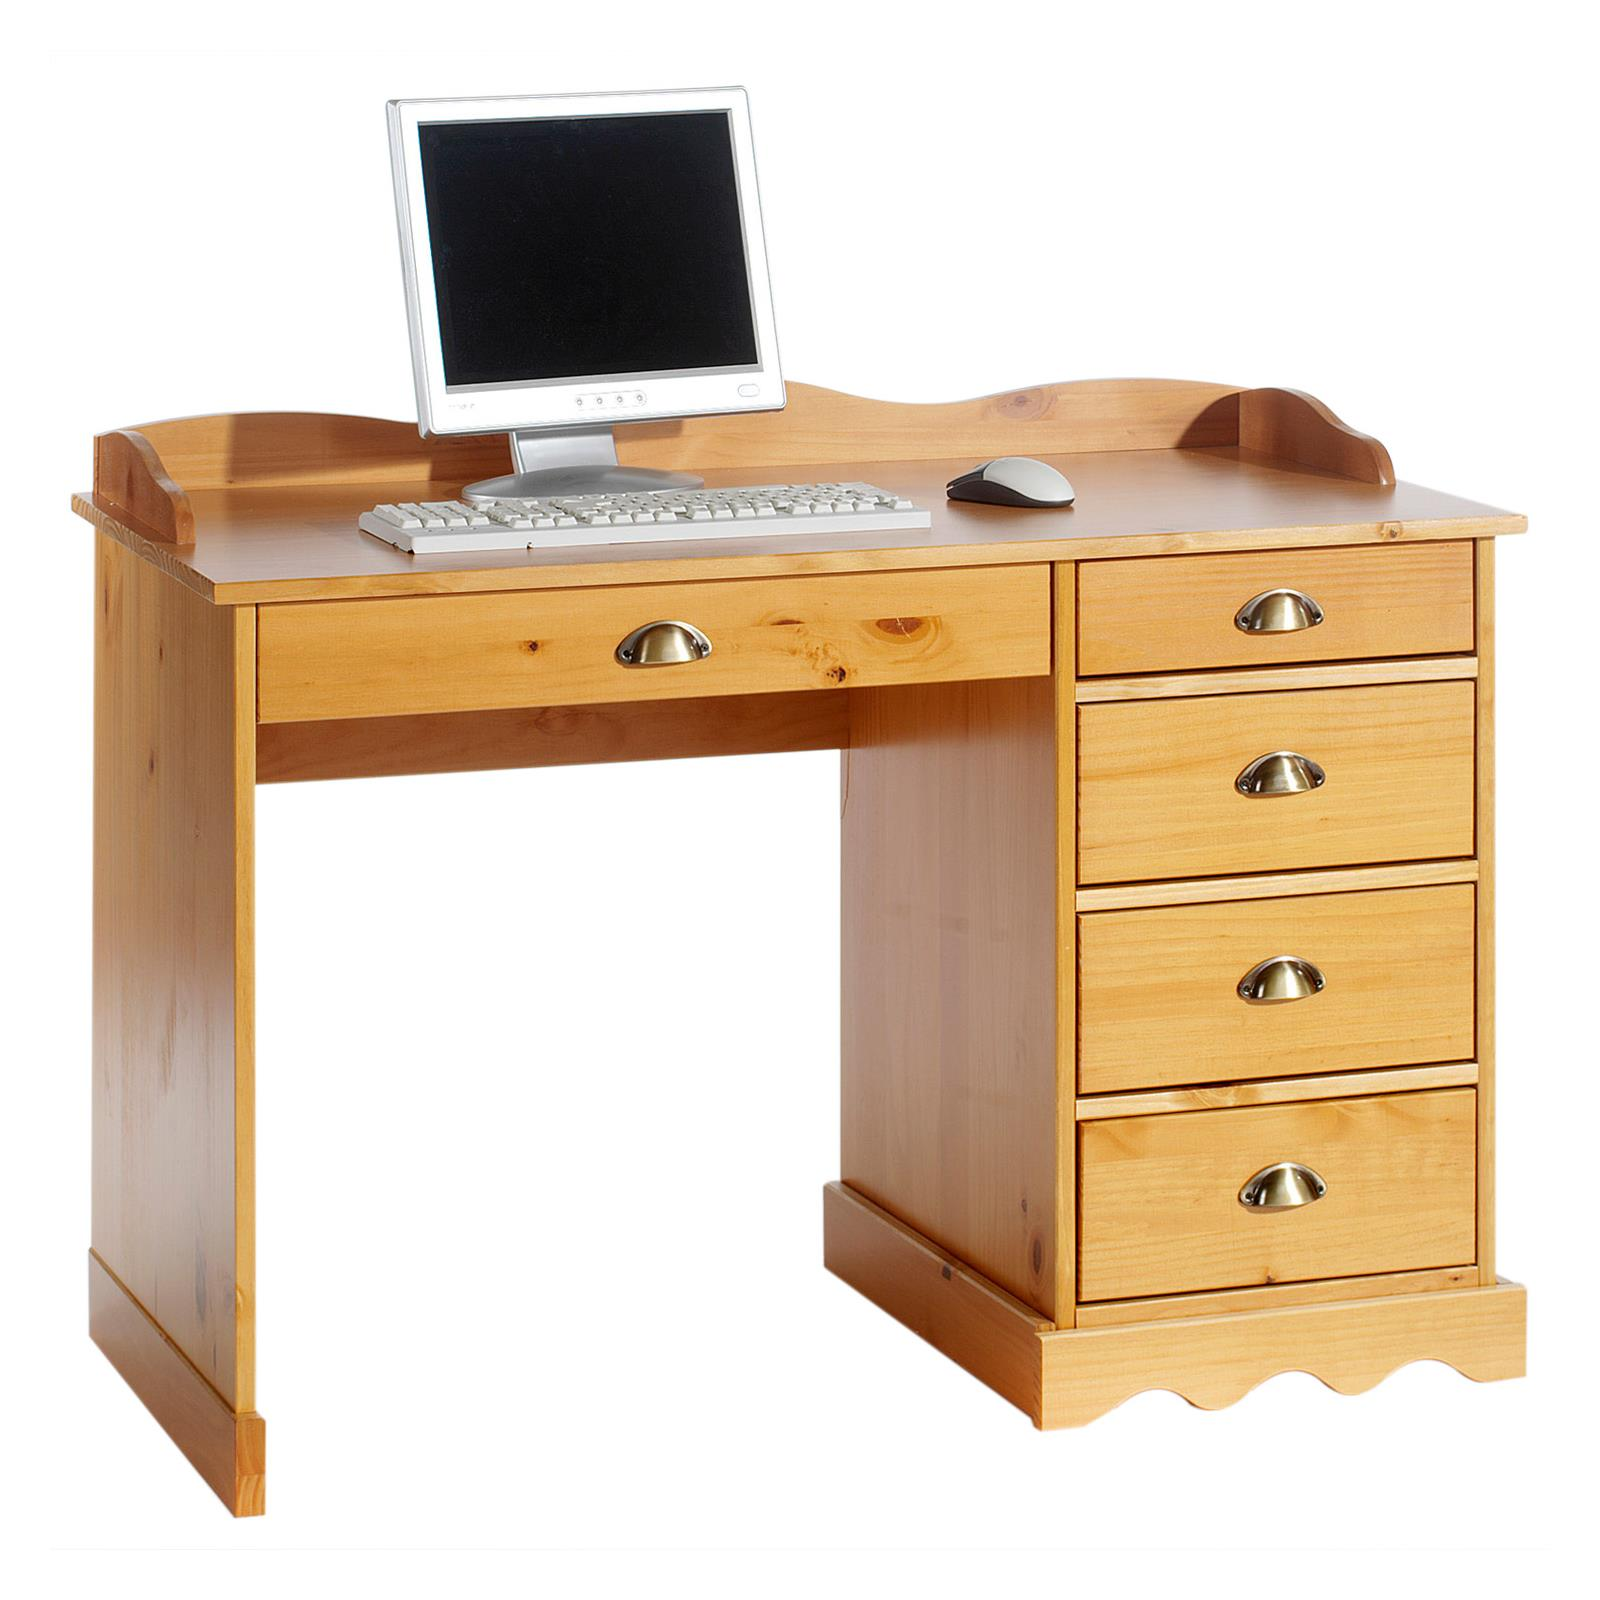 bureau en pin massif colette avec corniche couleur miel mobil meubles. Black Bedroom Furniture Sets. Home Design Ideas